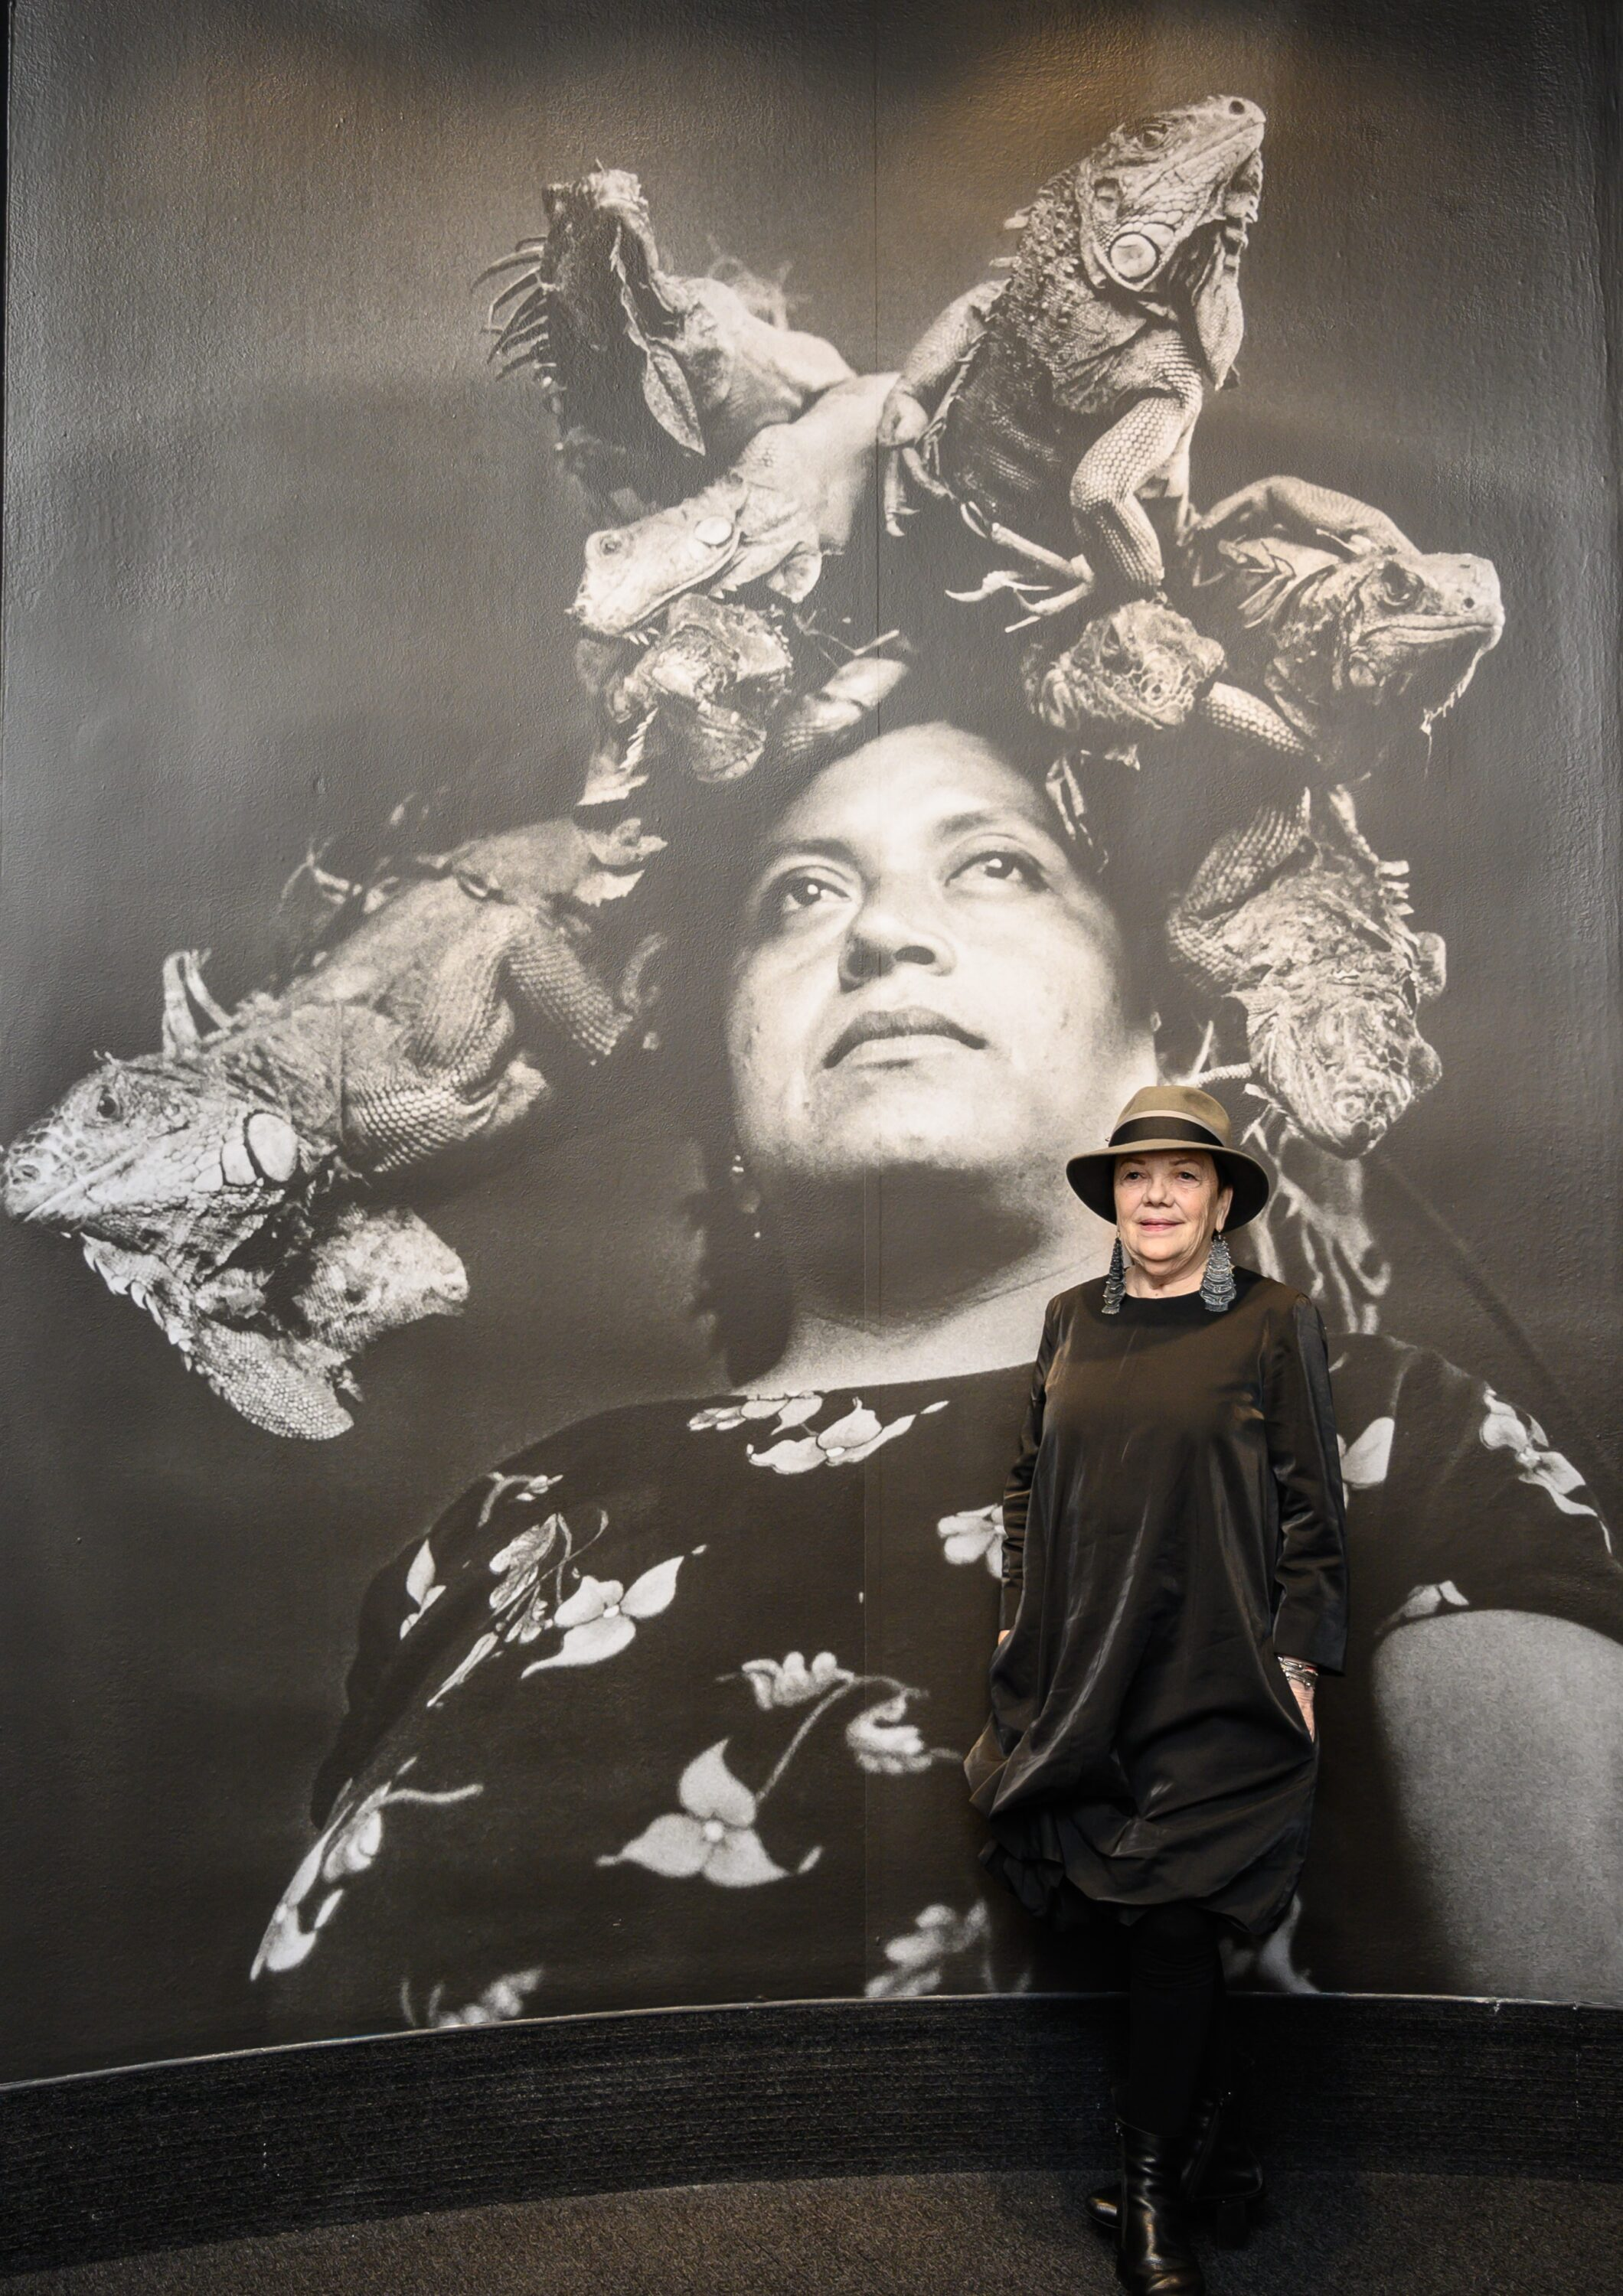 A light-skinned woman wearing a brimmed hat, geometric earrings, and a long-sleeved black velvet dress stands in front of a wall-sized black and white portrait of a woman, who has eight iguanas perched on her head like a crown. The photographed woman looks content and confident.